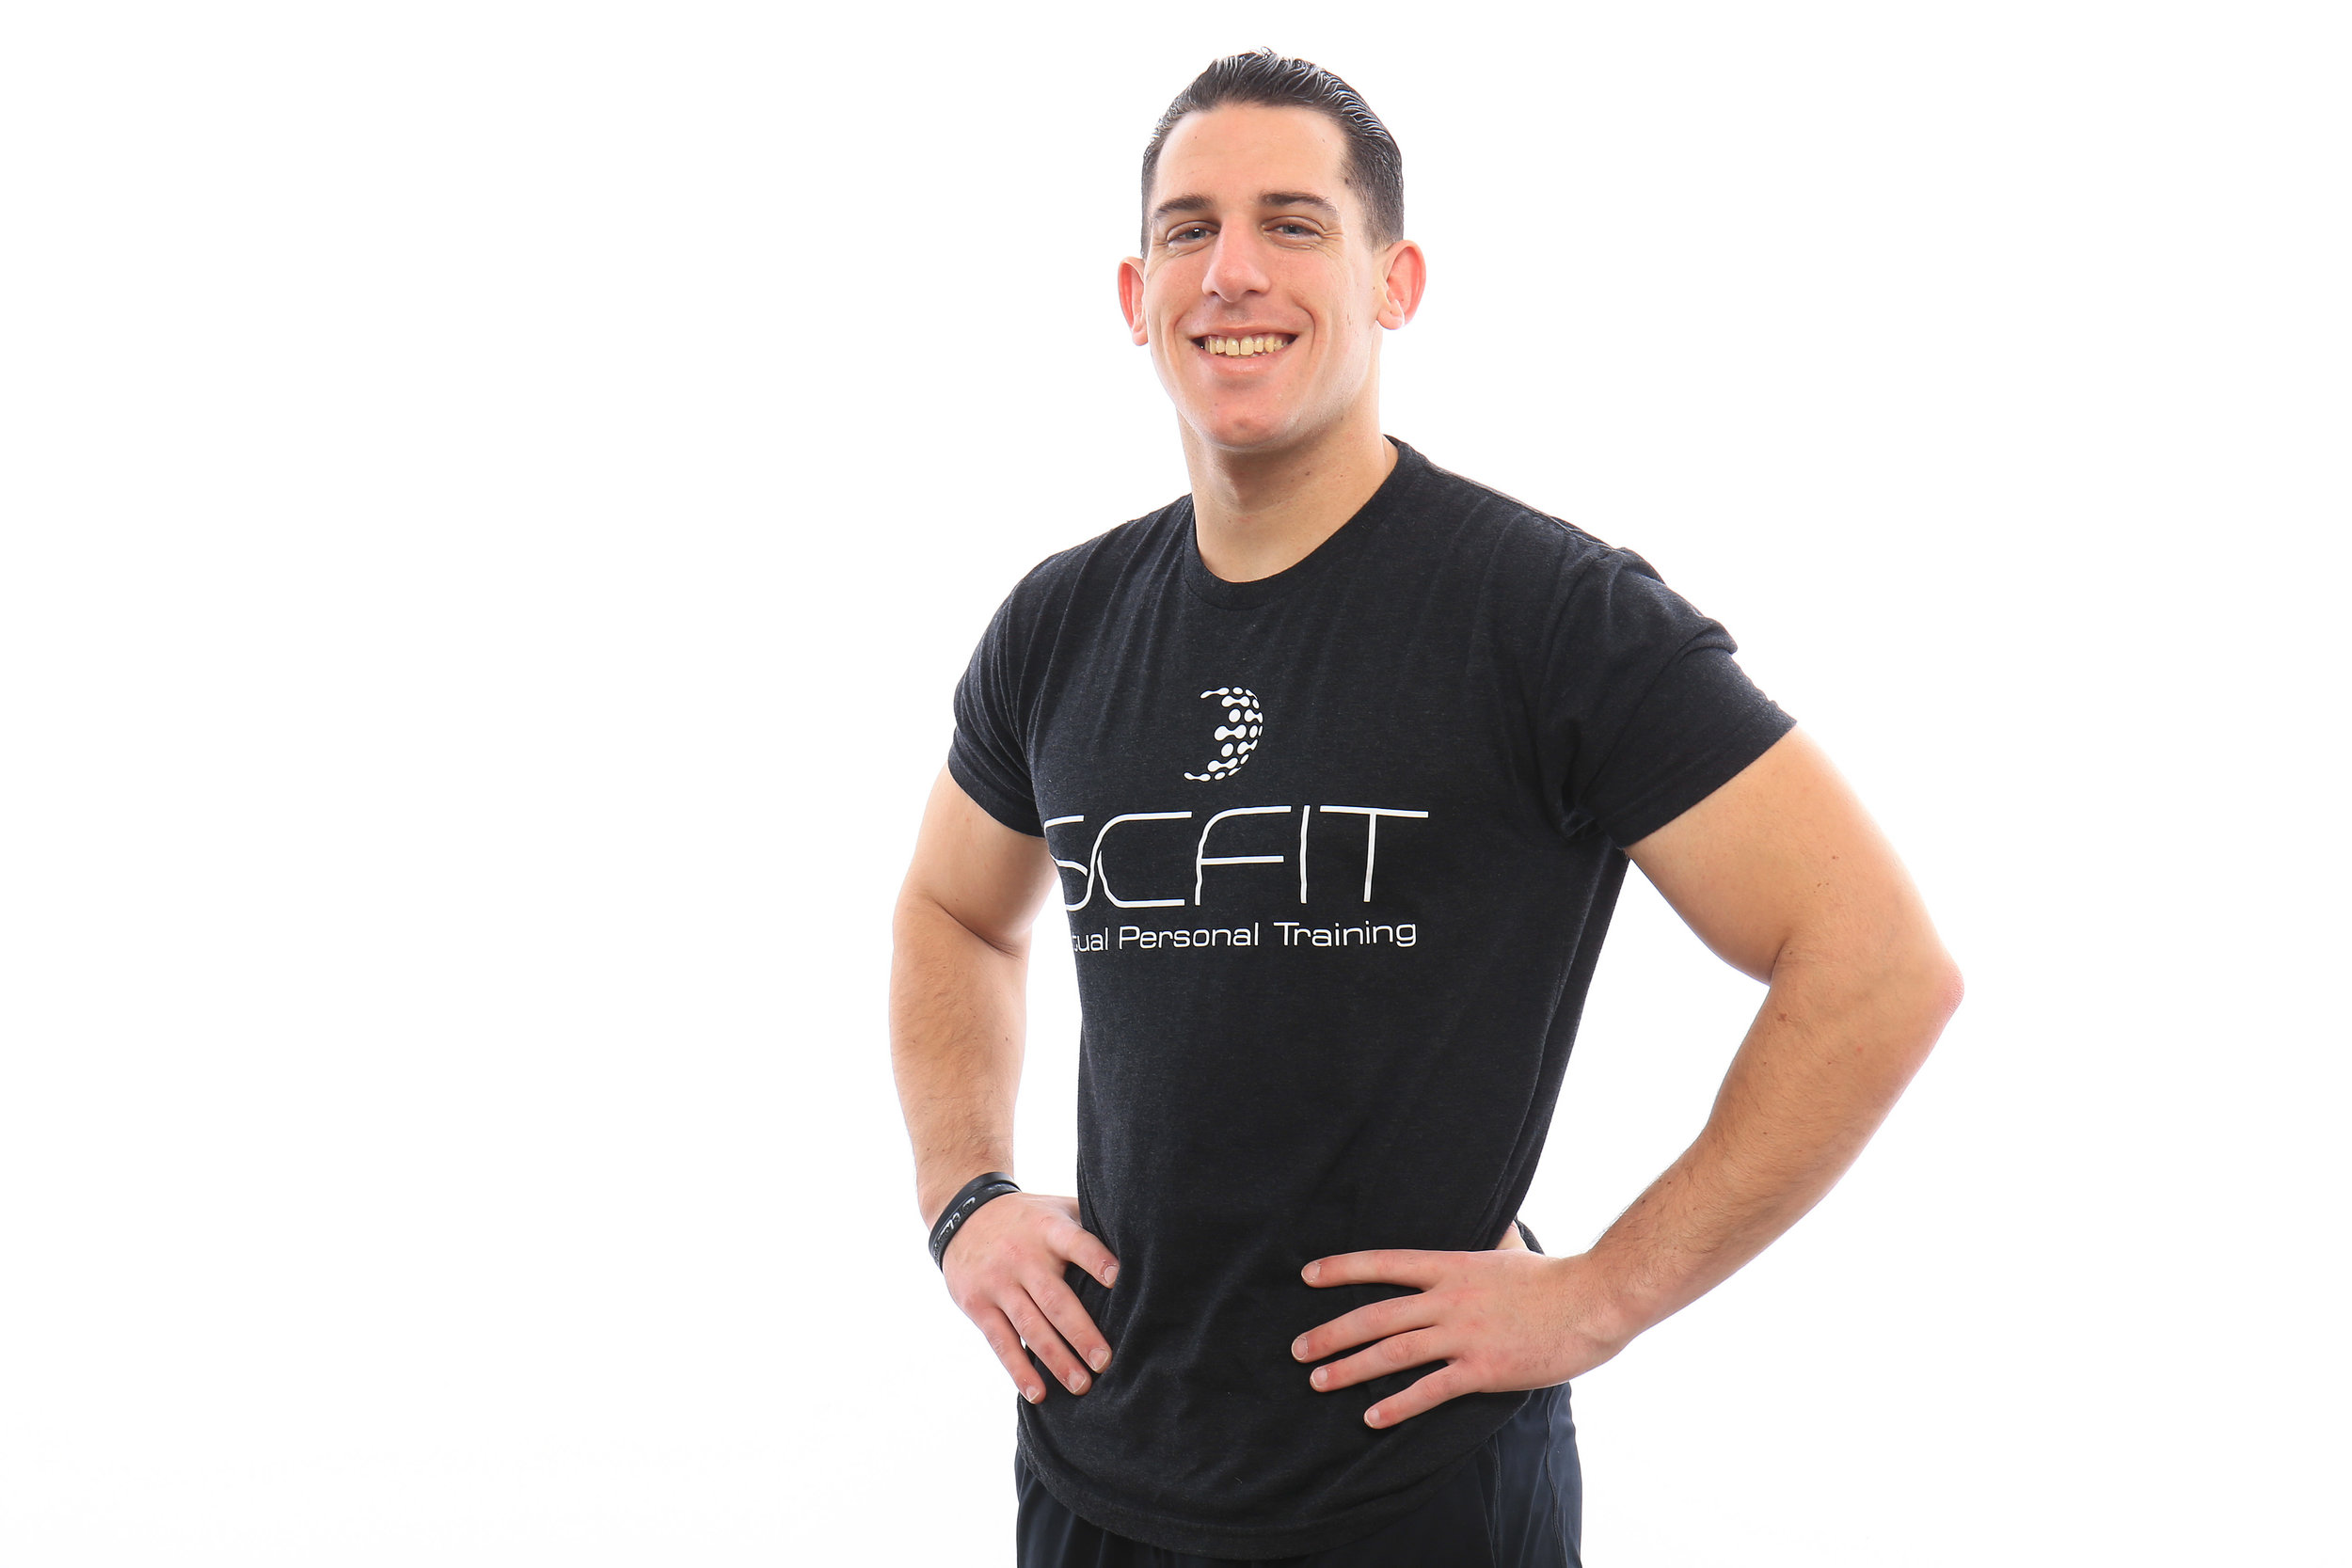 Hello! - Malek Banoun, a.k.a. Coach Malek, and I have been a personal trainer since 2008. 10 years I have been working in the Fitness Industry, learning what works, what doesn't work and what people really look for when it comes to fitness.Since then, I've branched off, starting my own FULL SERVICE FITNESS, LIFESTYLE & SPORTS VIDEO PRODUCTION COMPANY to create personal videos for fitness gyms.My objective as a content creator is to utilize the talents I was gifted with to capture and share all the good experiences that comes with being apart of a gym, in hope to inspire viewers to have a more positive outlook on living healthier lifestyles and to be more confident, happier, and live more fulfilling lives.Please fill out the form on this page, or email me at malek@scfit.com for any and all business inquiries. Follow me on Facebook and Instagram @coachmalek and @coachmalek to see the fun projects we are working on :)